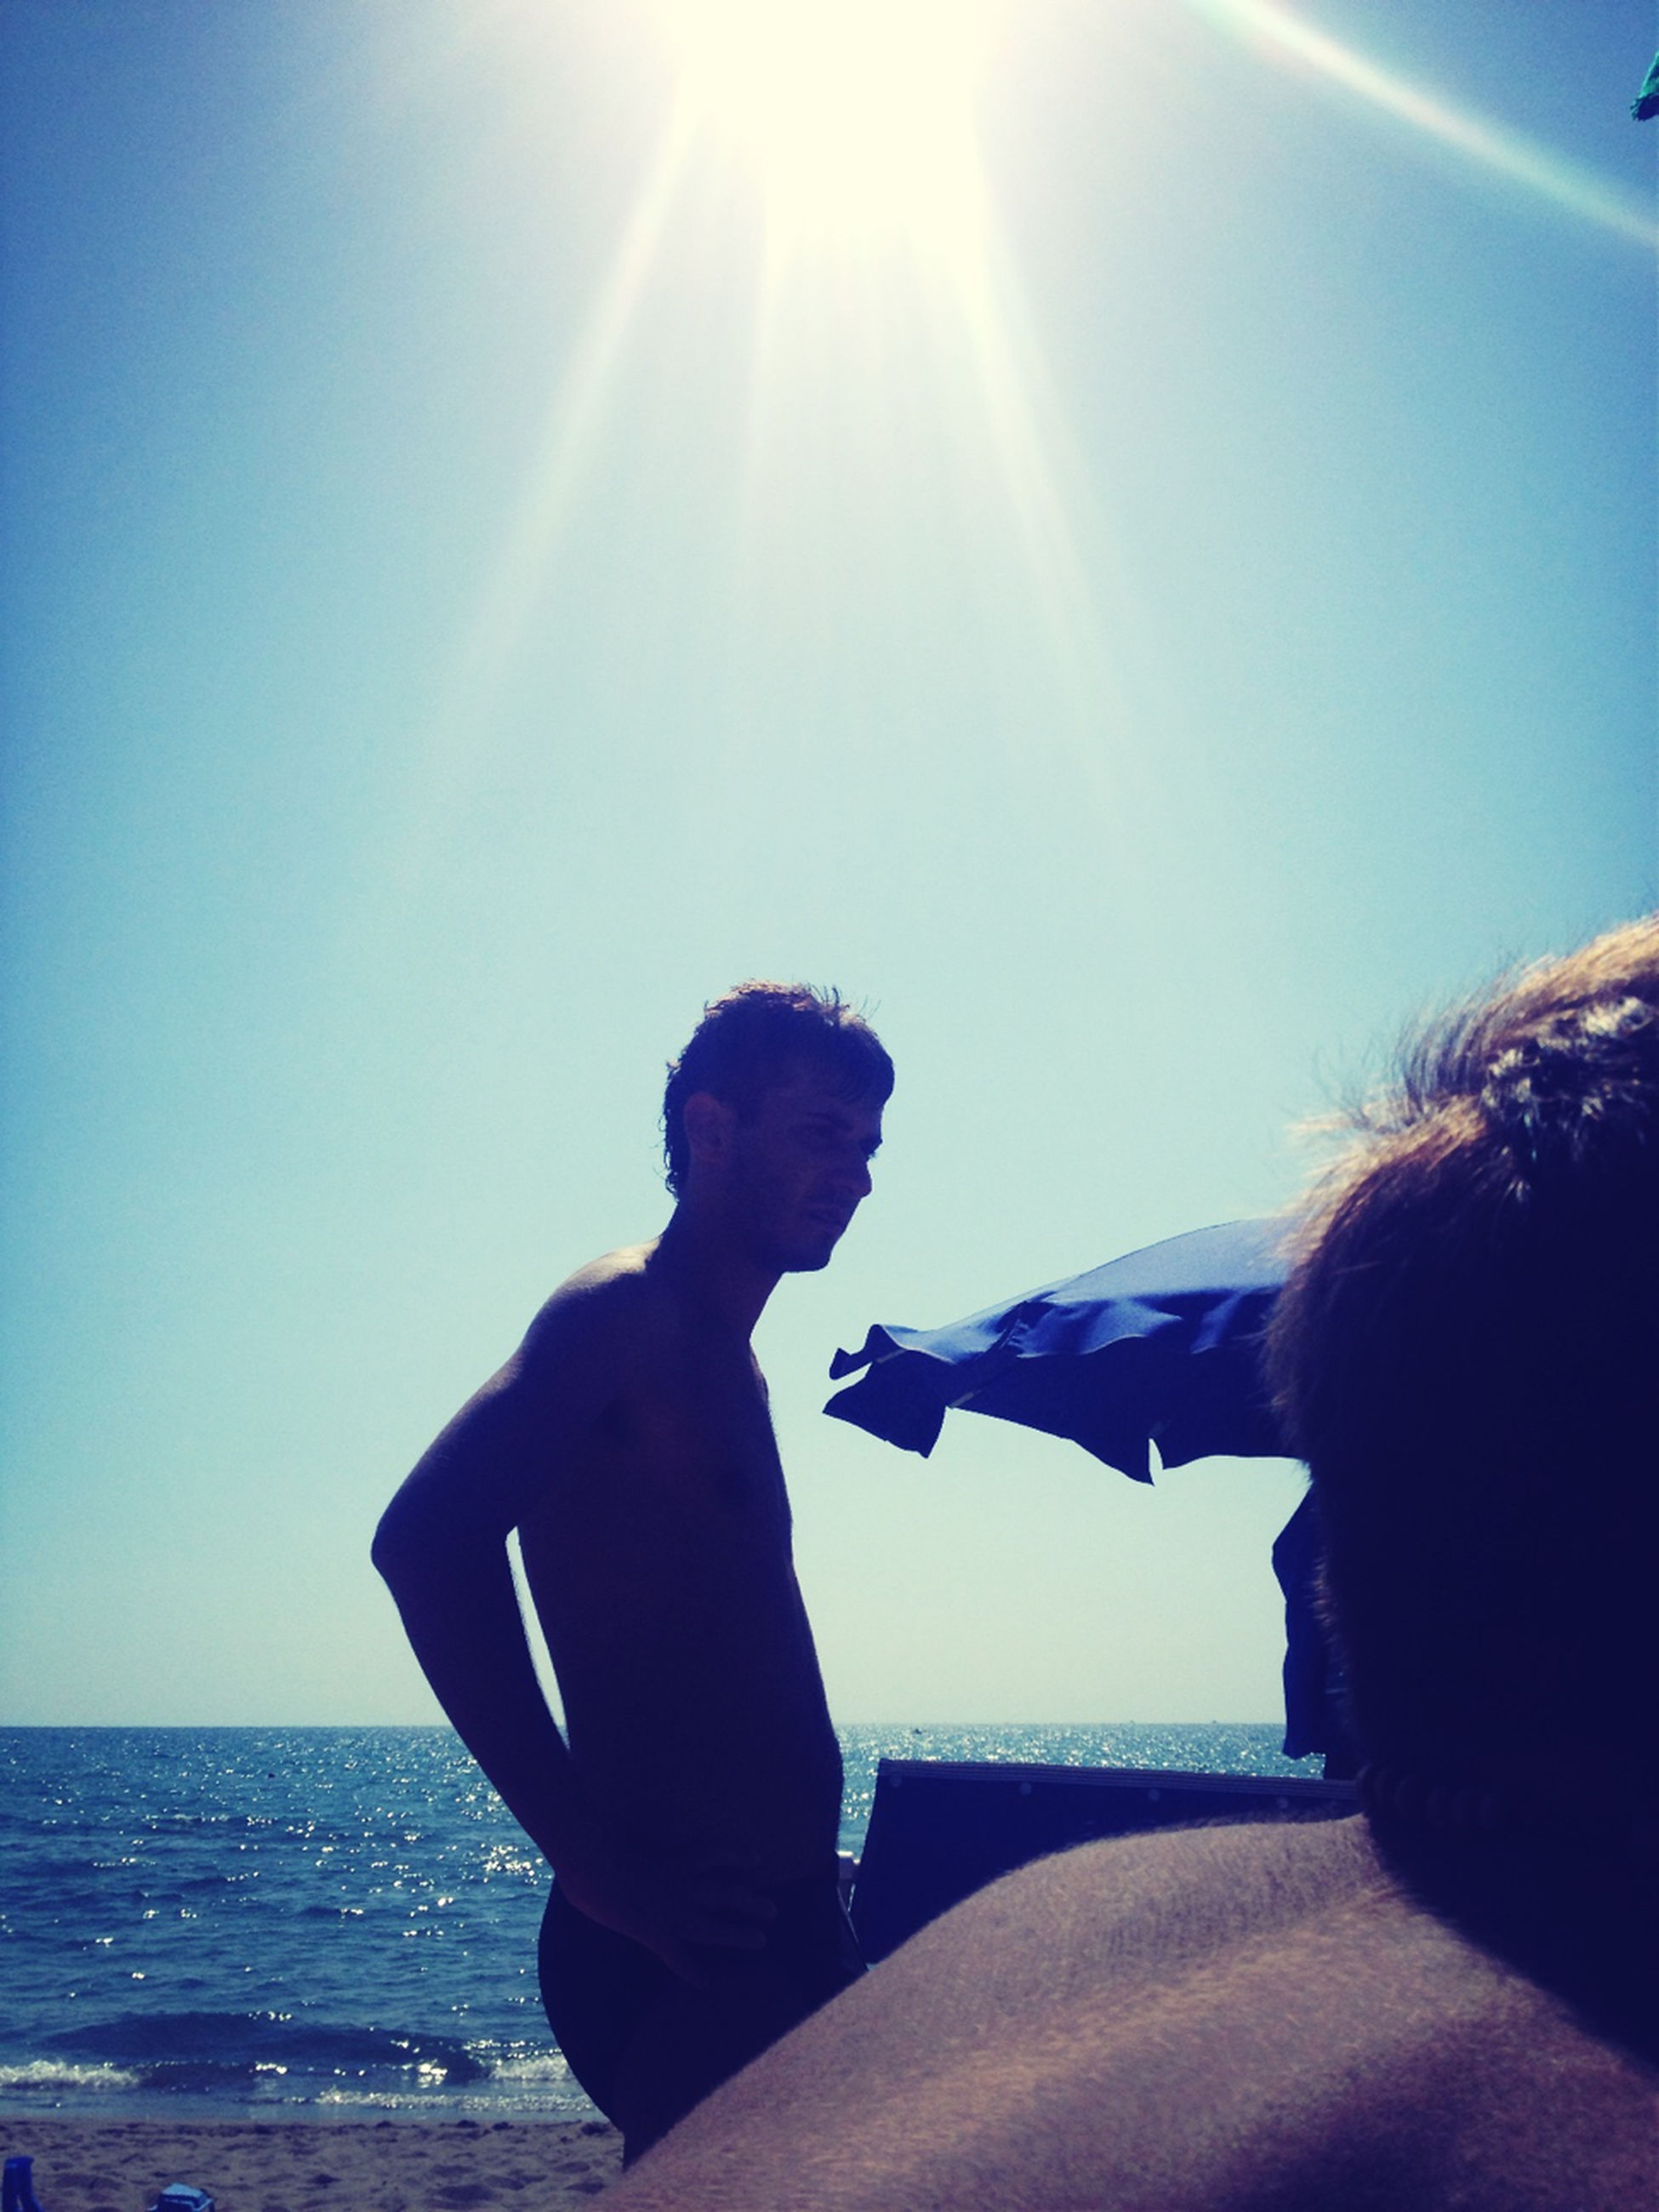 sea, lifestyles, water, leisure activity, sunlight, horizon over water, rear view, men, sunbeam, sun, clear sky, sky, blue, beach, person, holding, vacations, lens flare